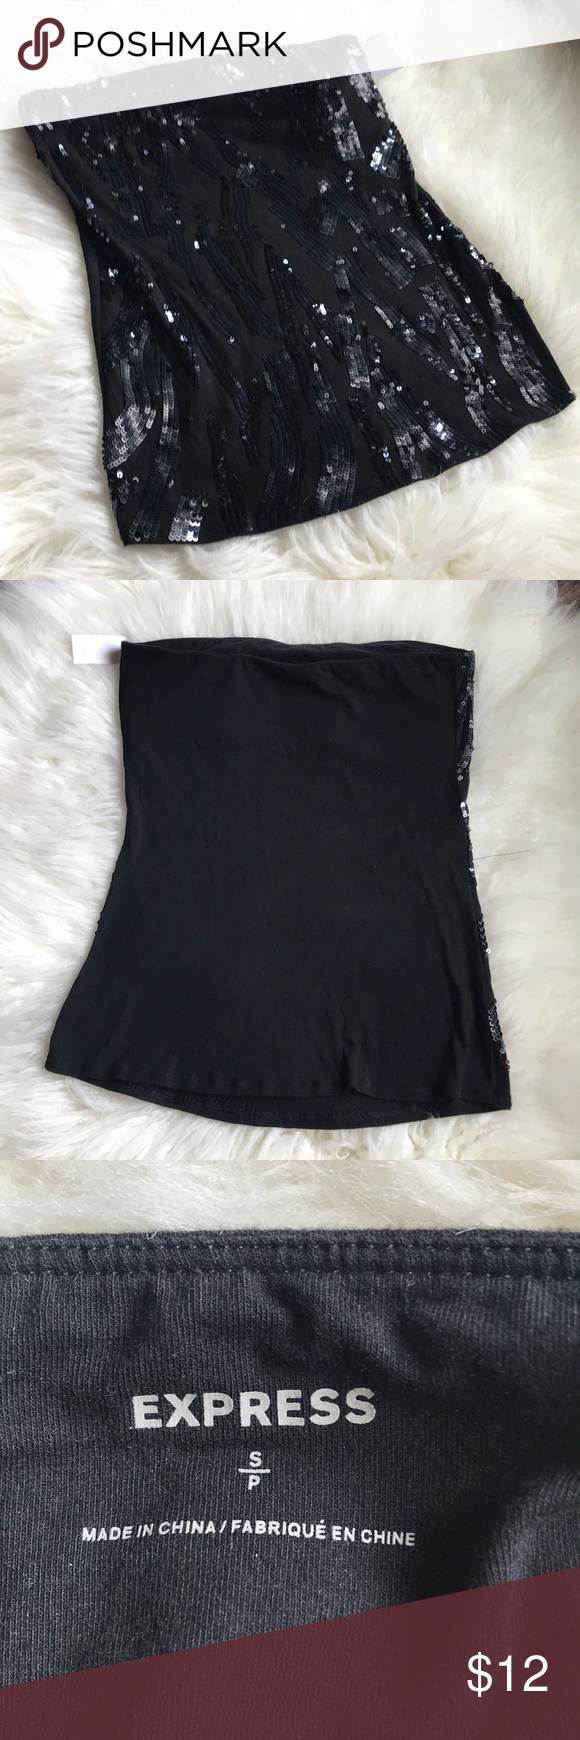 Express Strapless Top! 🖤🖤🖤💋 Strapless top, Tops, Clothes